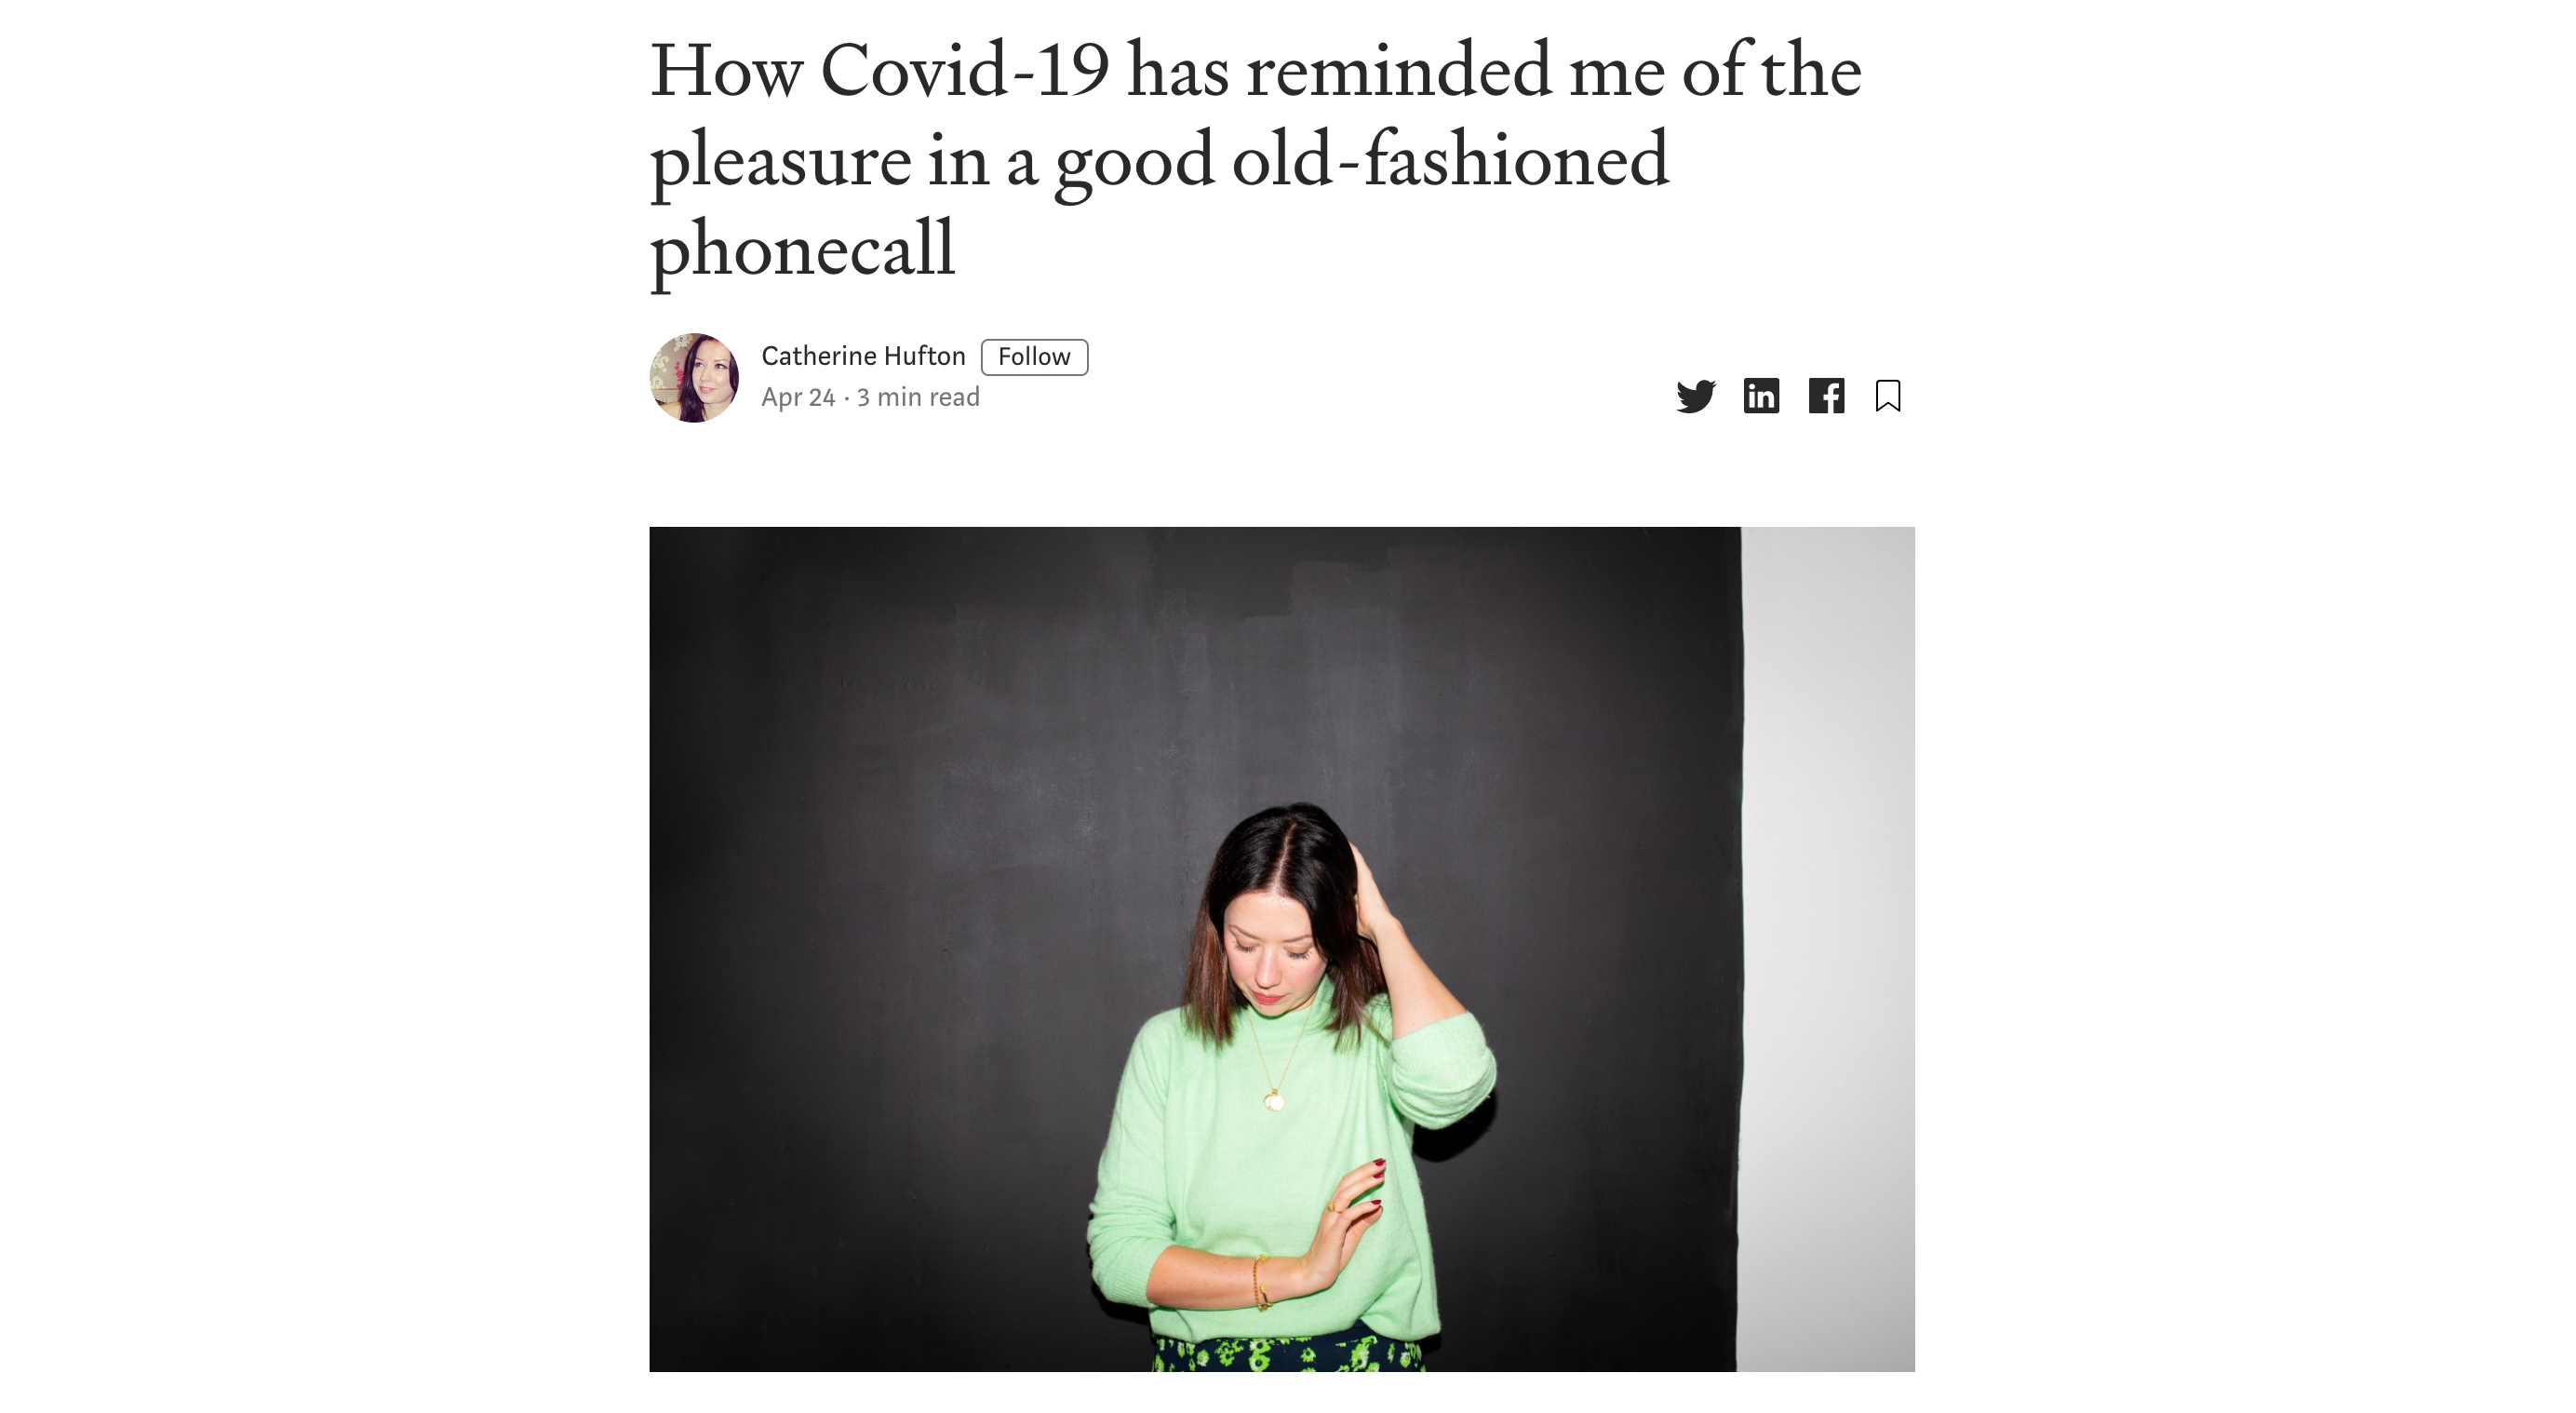 How Covid-19 has reminded me of the pleasure in a good old-fashioned phonecall